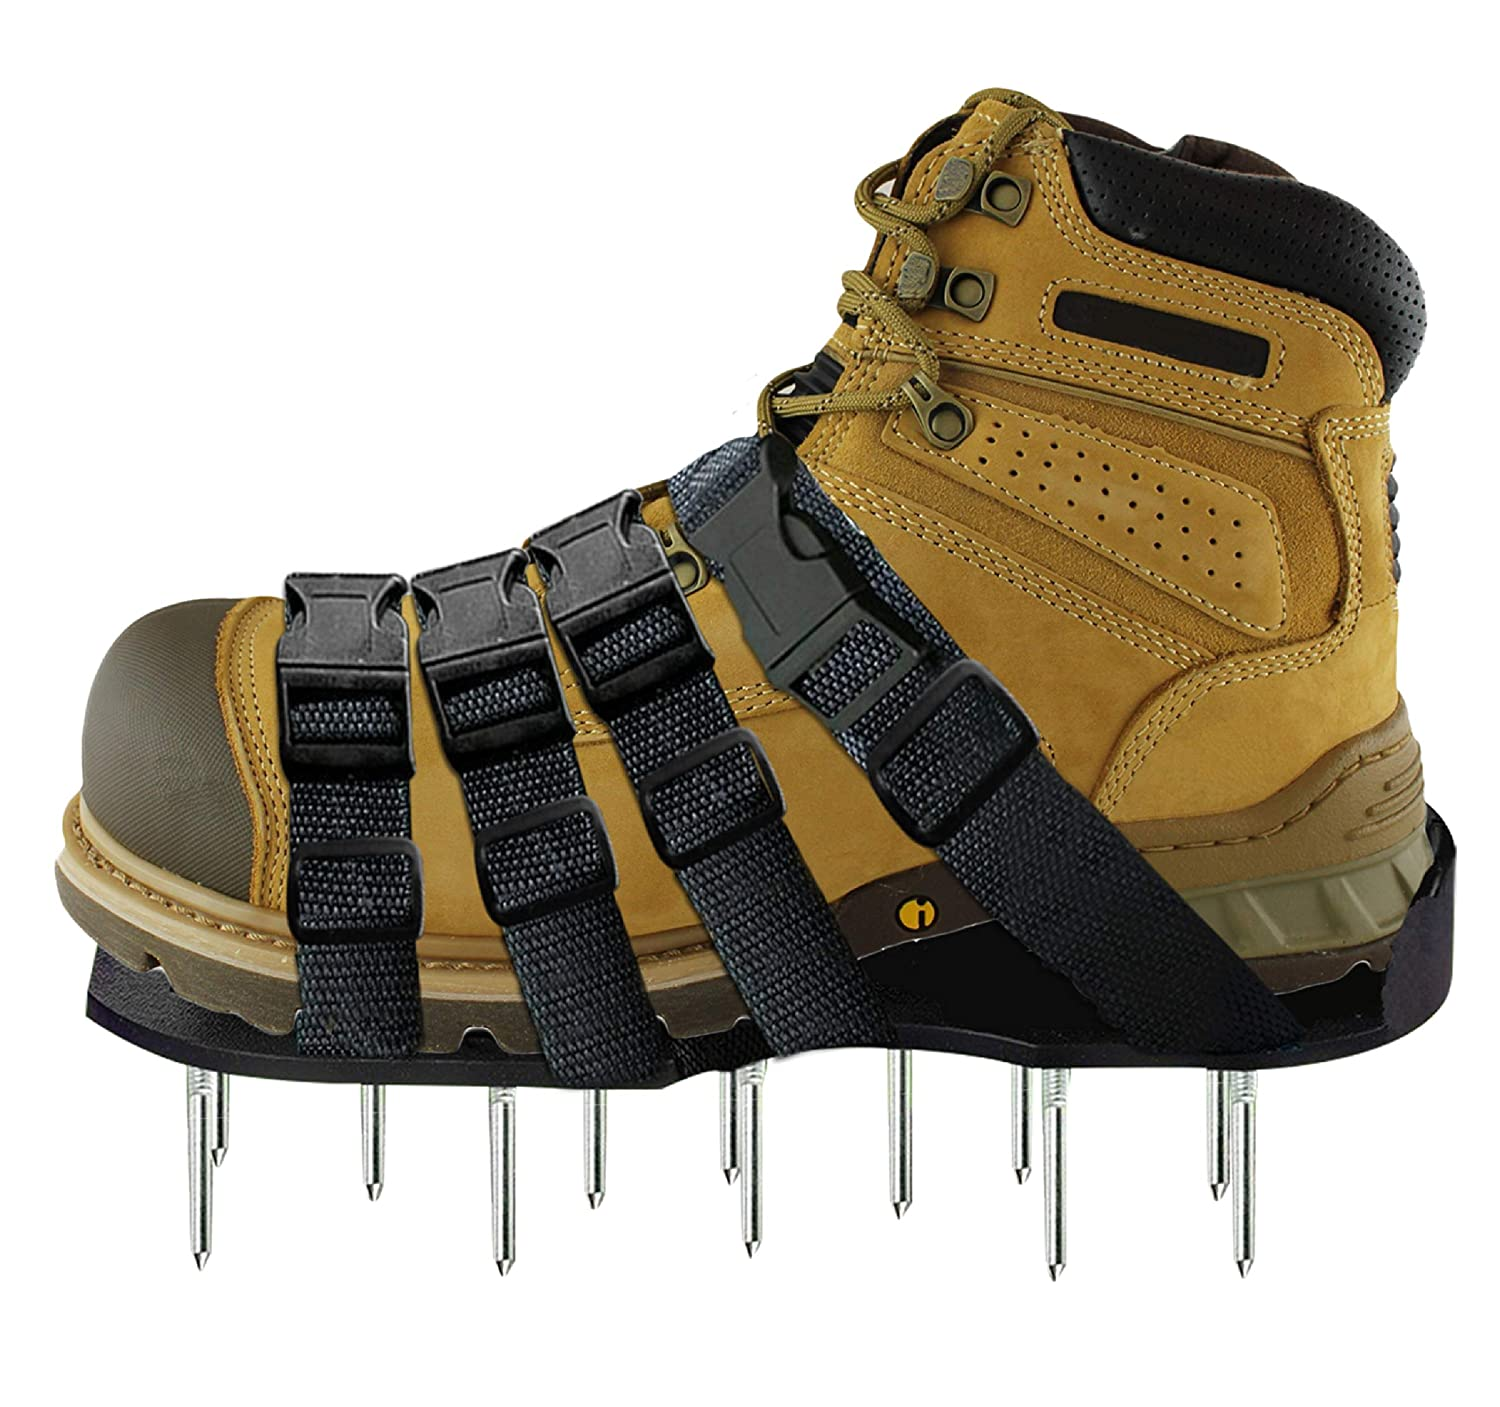 Osaava 47921 Lawn Aerator Shoes Full ASSEMBLED Spiked Aerating Lawn Sandals With Adjustable 4 straps for Aerating Your Lawn Greener and Healthier Garden or Yard Sturdy Universal Size that Fits all